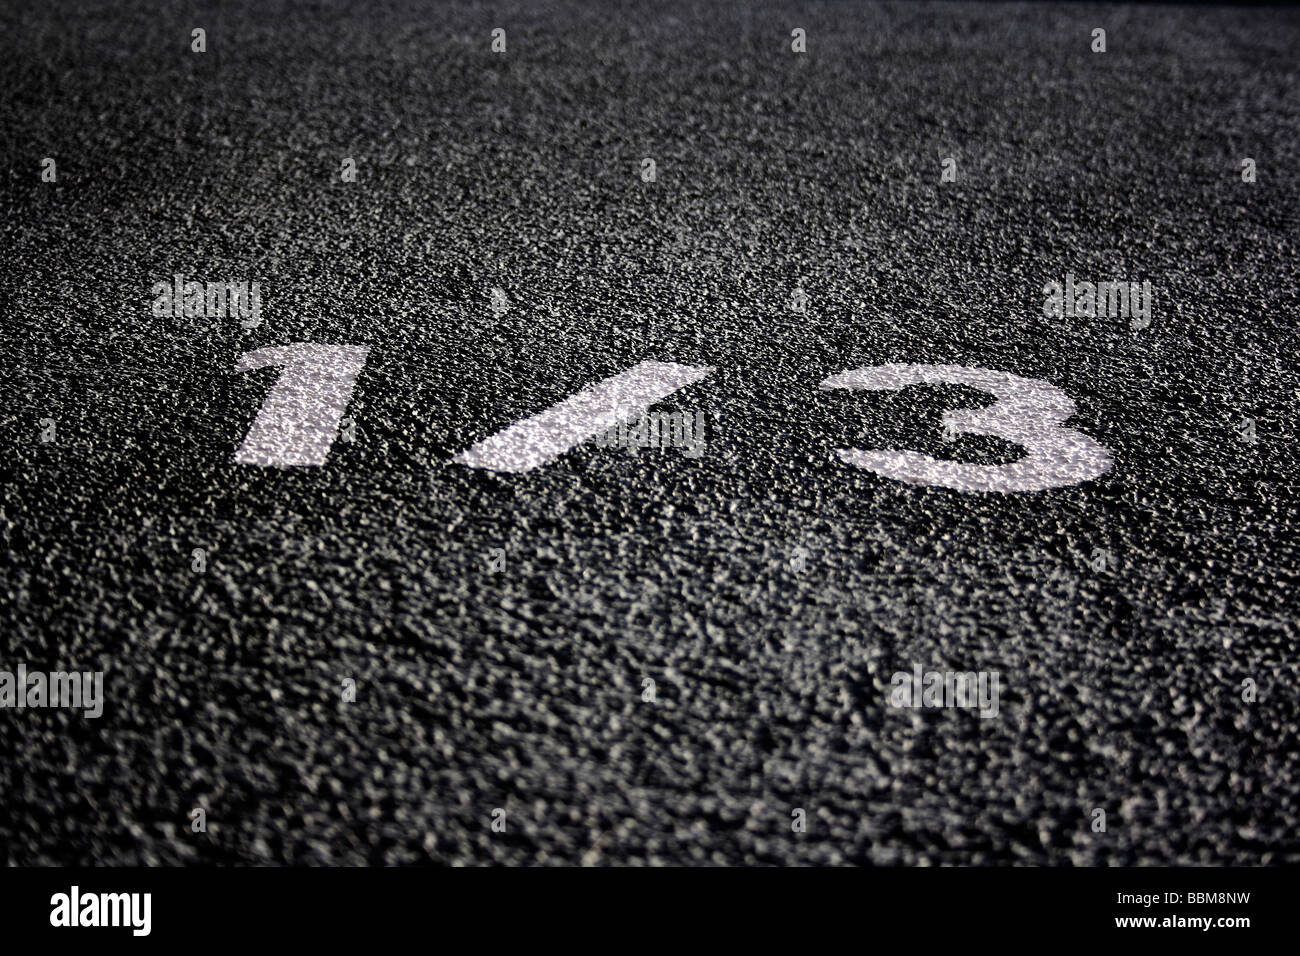 House number 1 / 3 on house wall - Stock Image